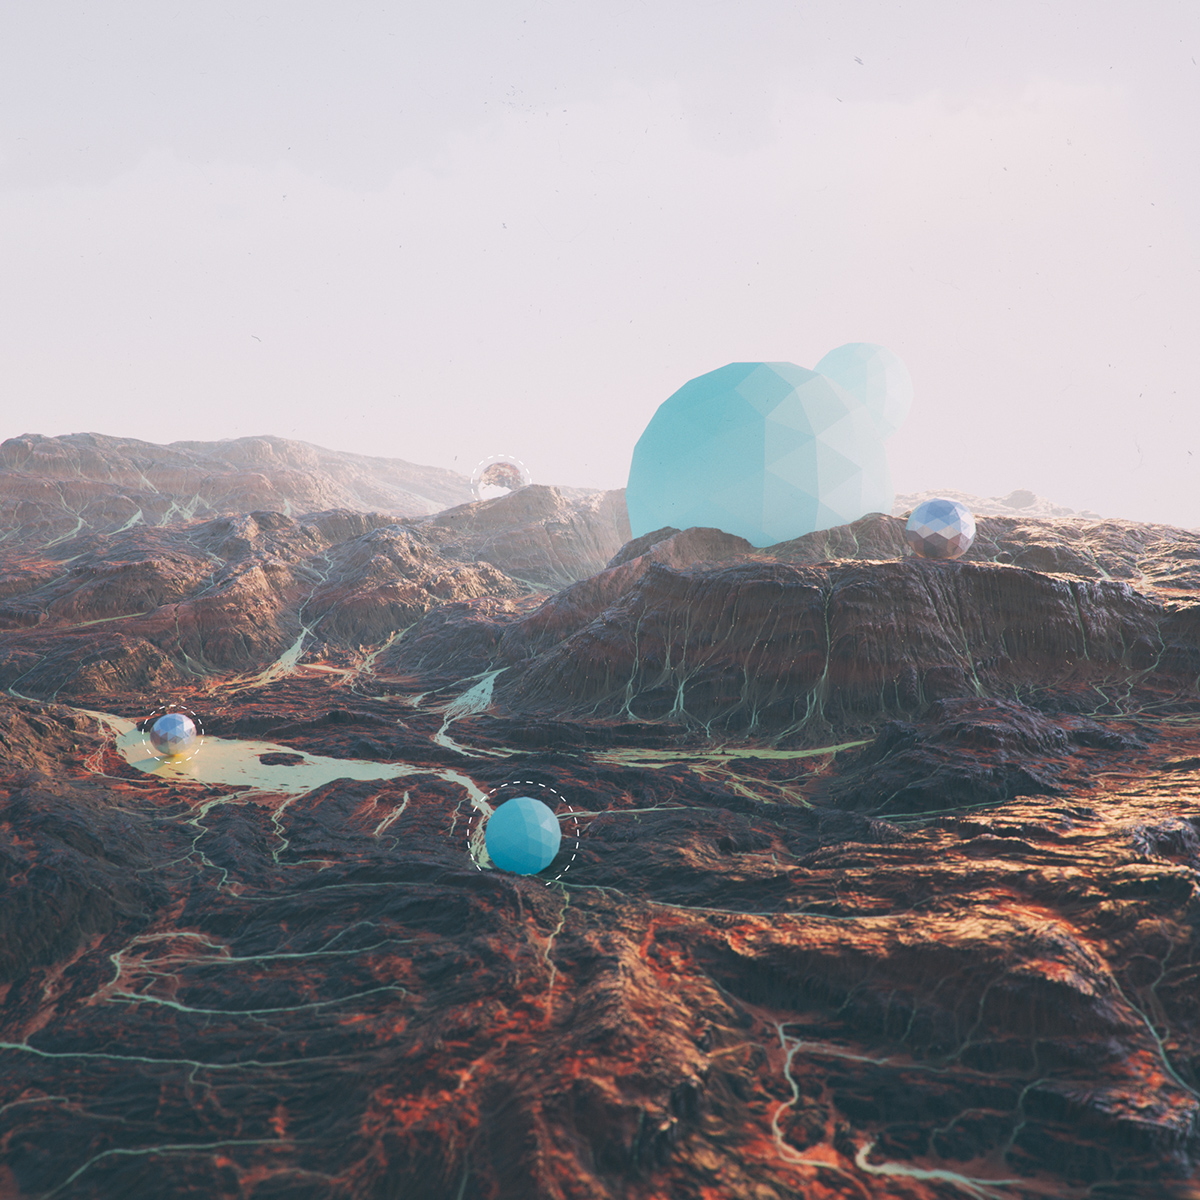 Courtesy of Filip Hodas